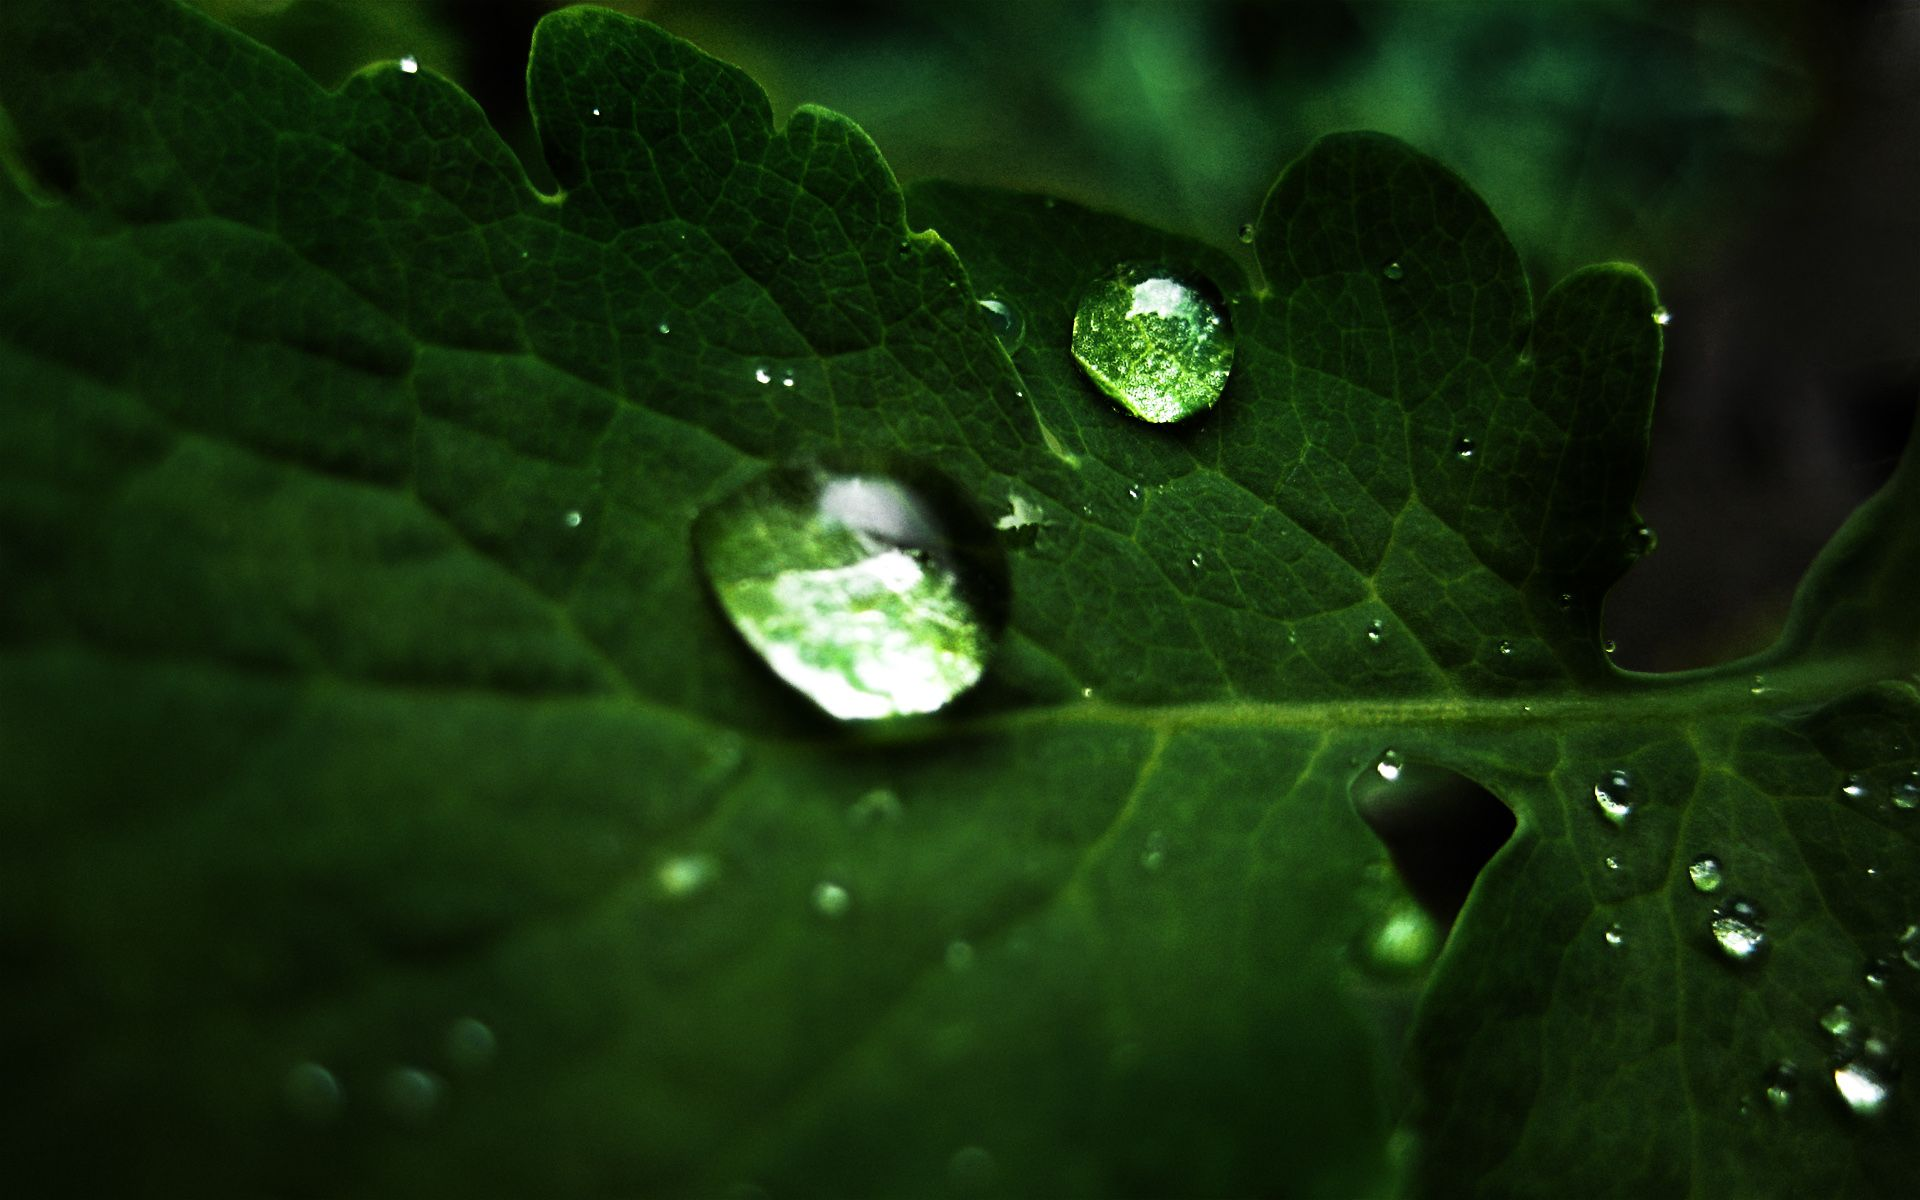 amazing nature | beautiful capture of water drops on green leave